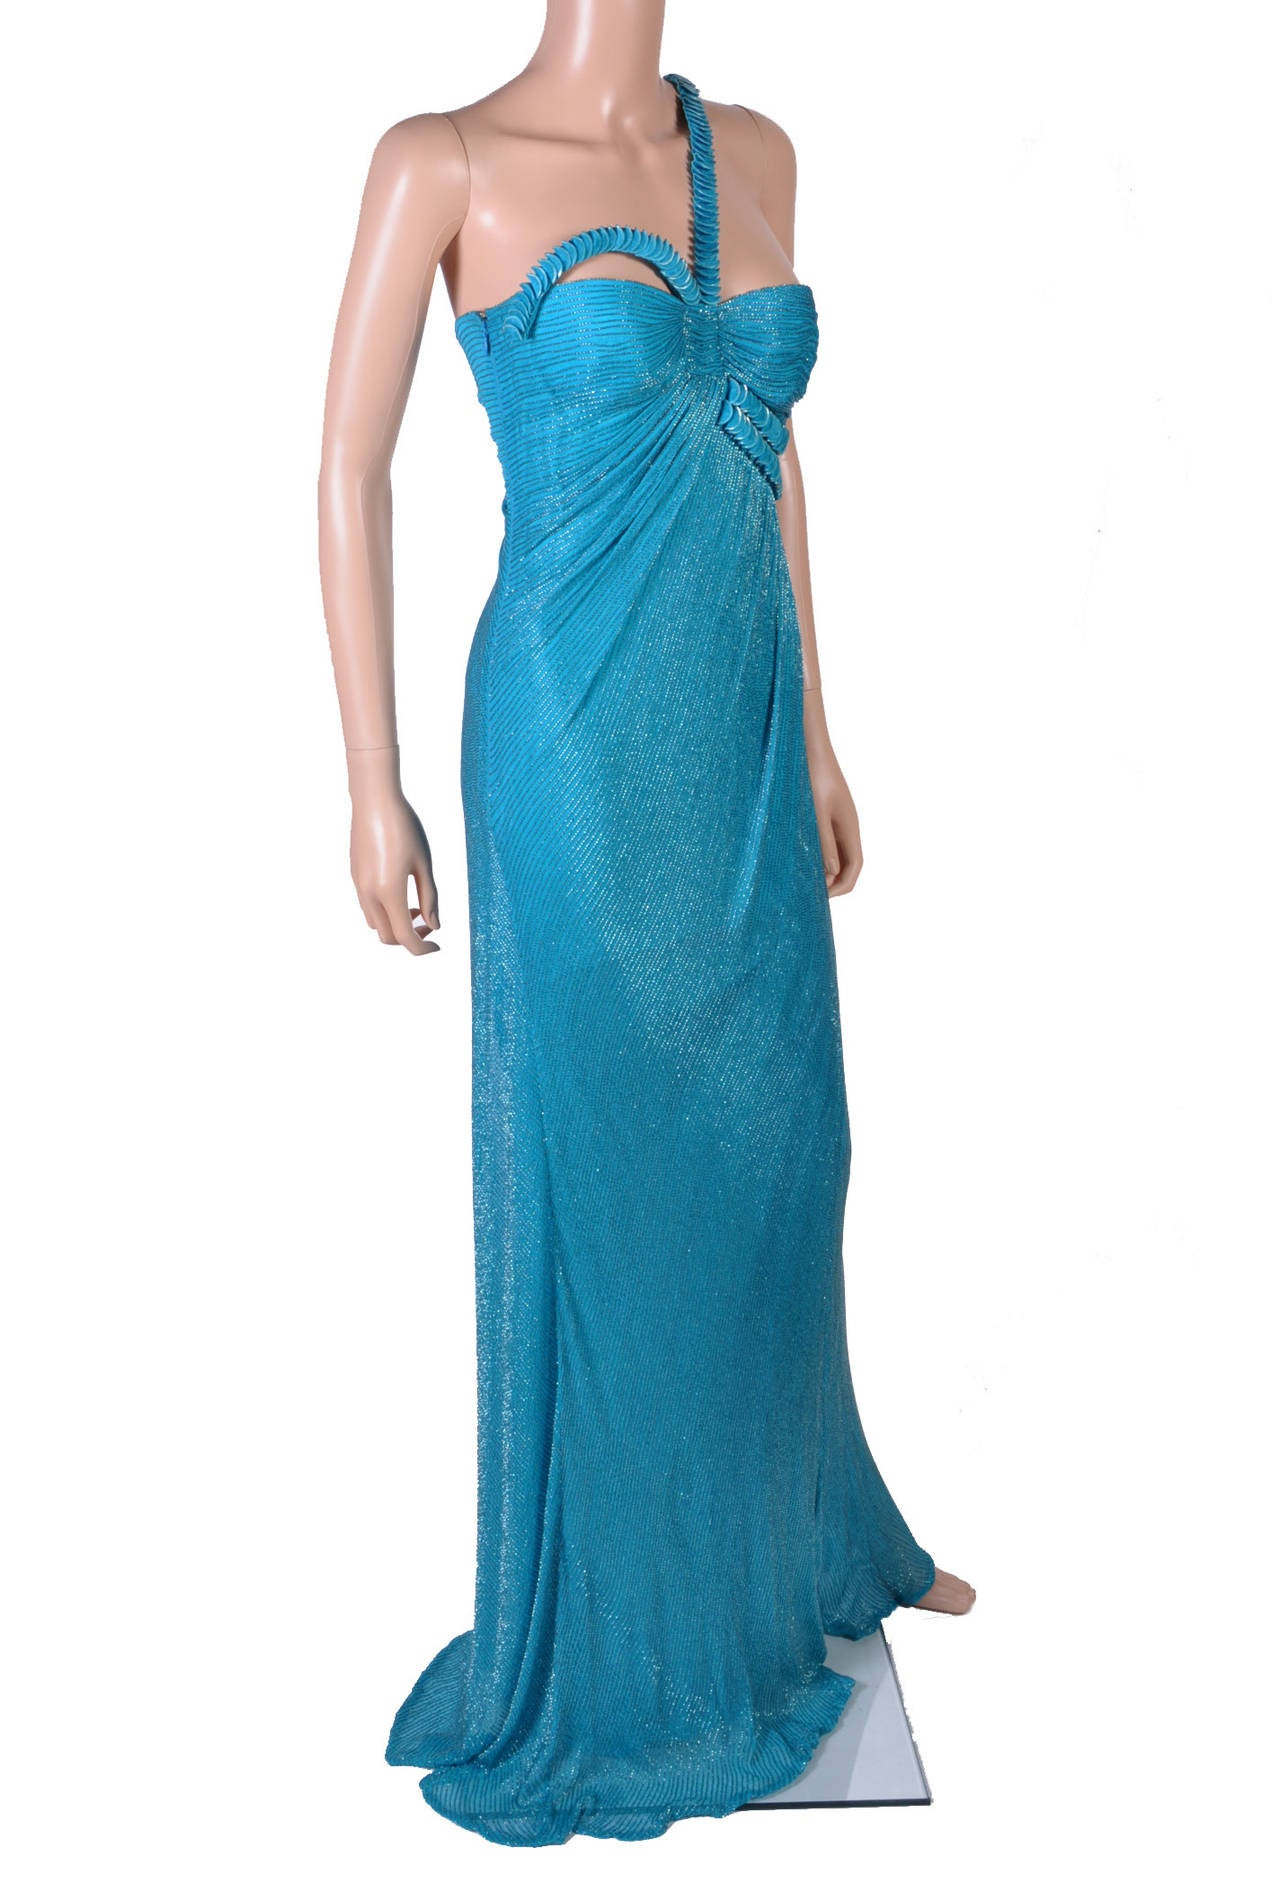 New versace fully embroidered long dress for sale at stdibs